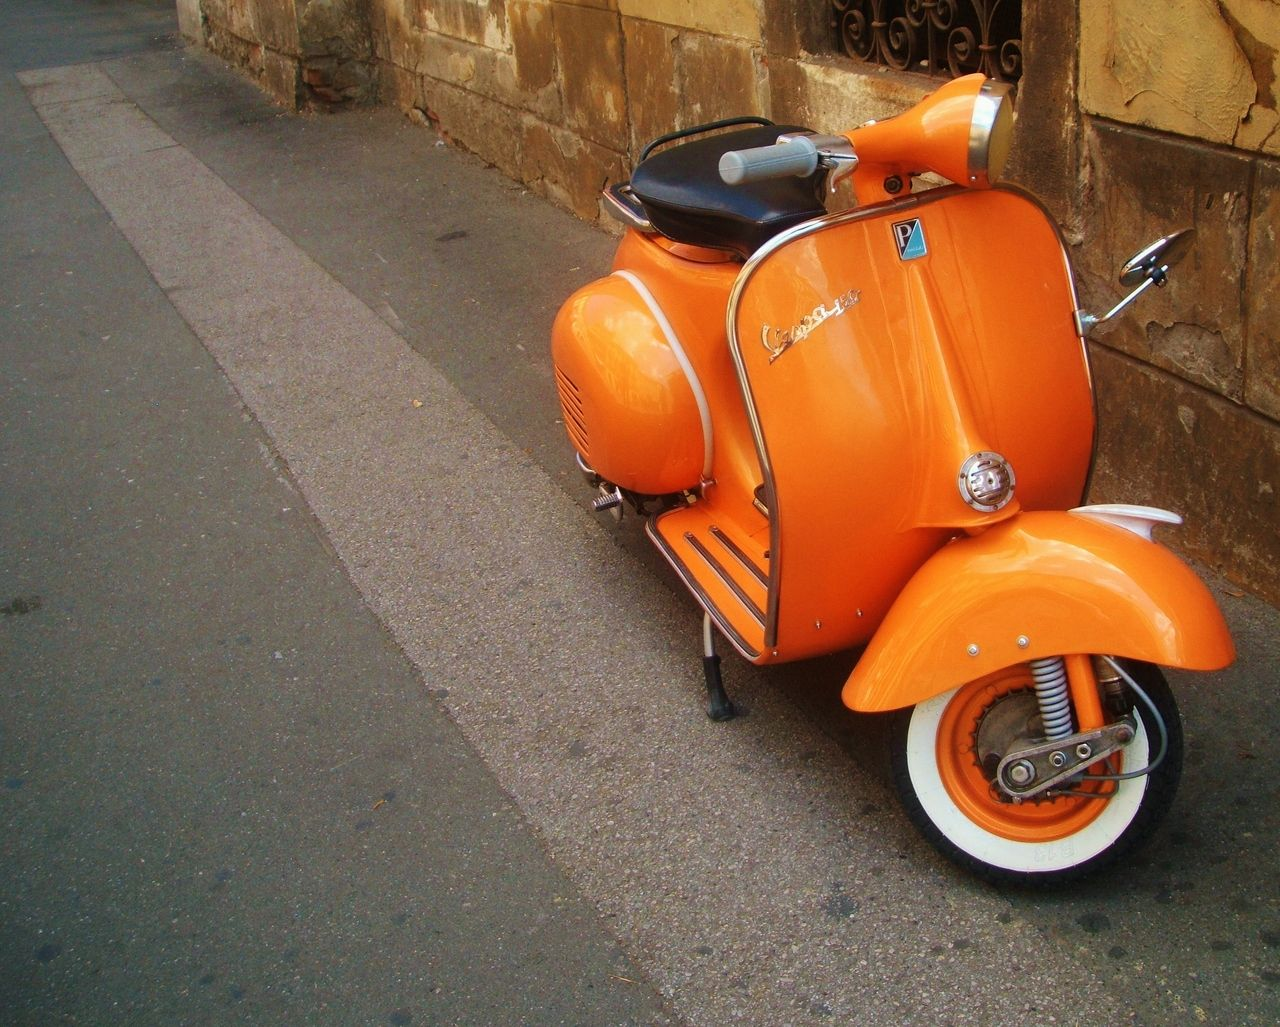 Vintage scooter, seen in Croatia by silvi´ / http://sarthouse.tumblr.com/post/30091344829/silvi-croatia-3